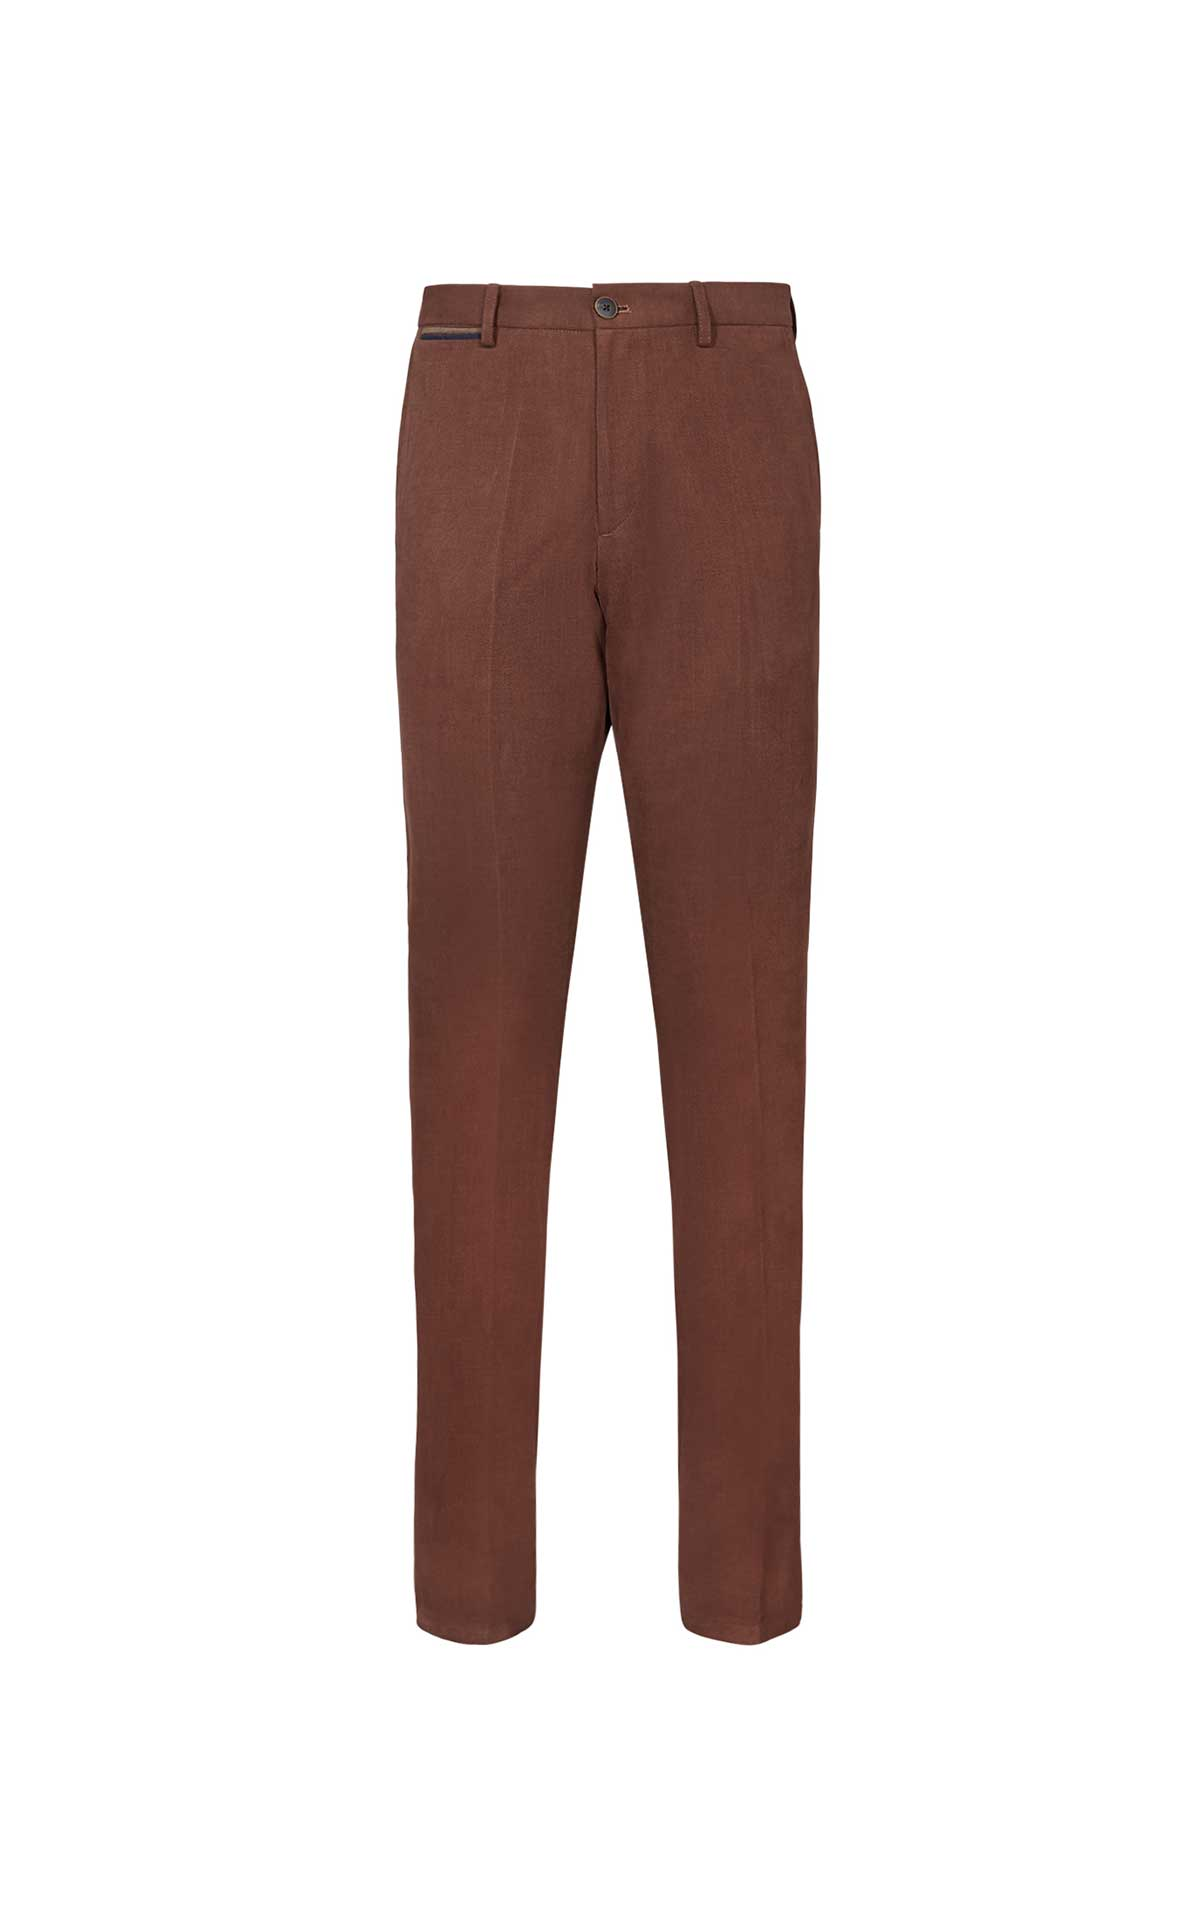 Brown trousers for men from El Ganso